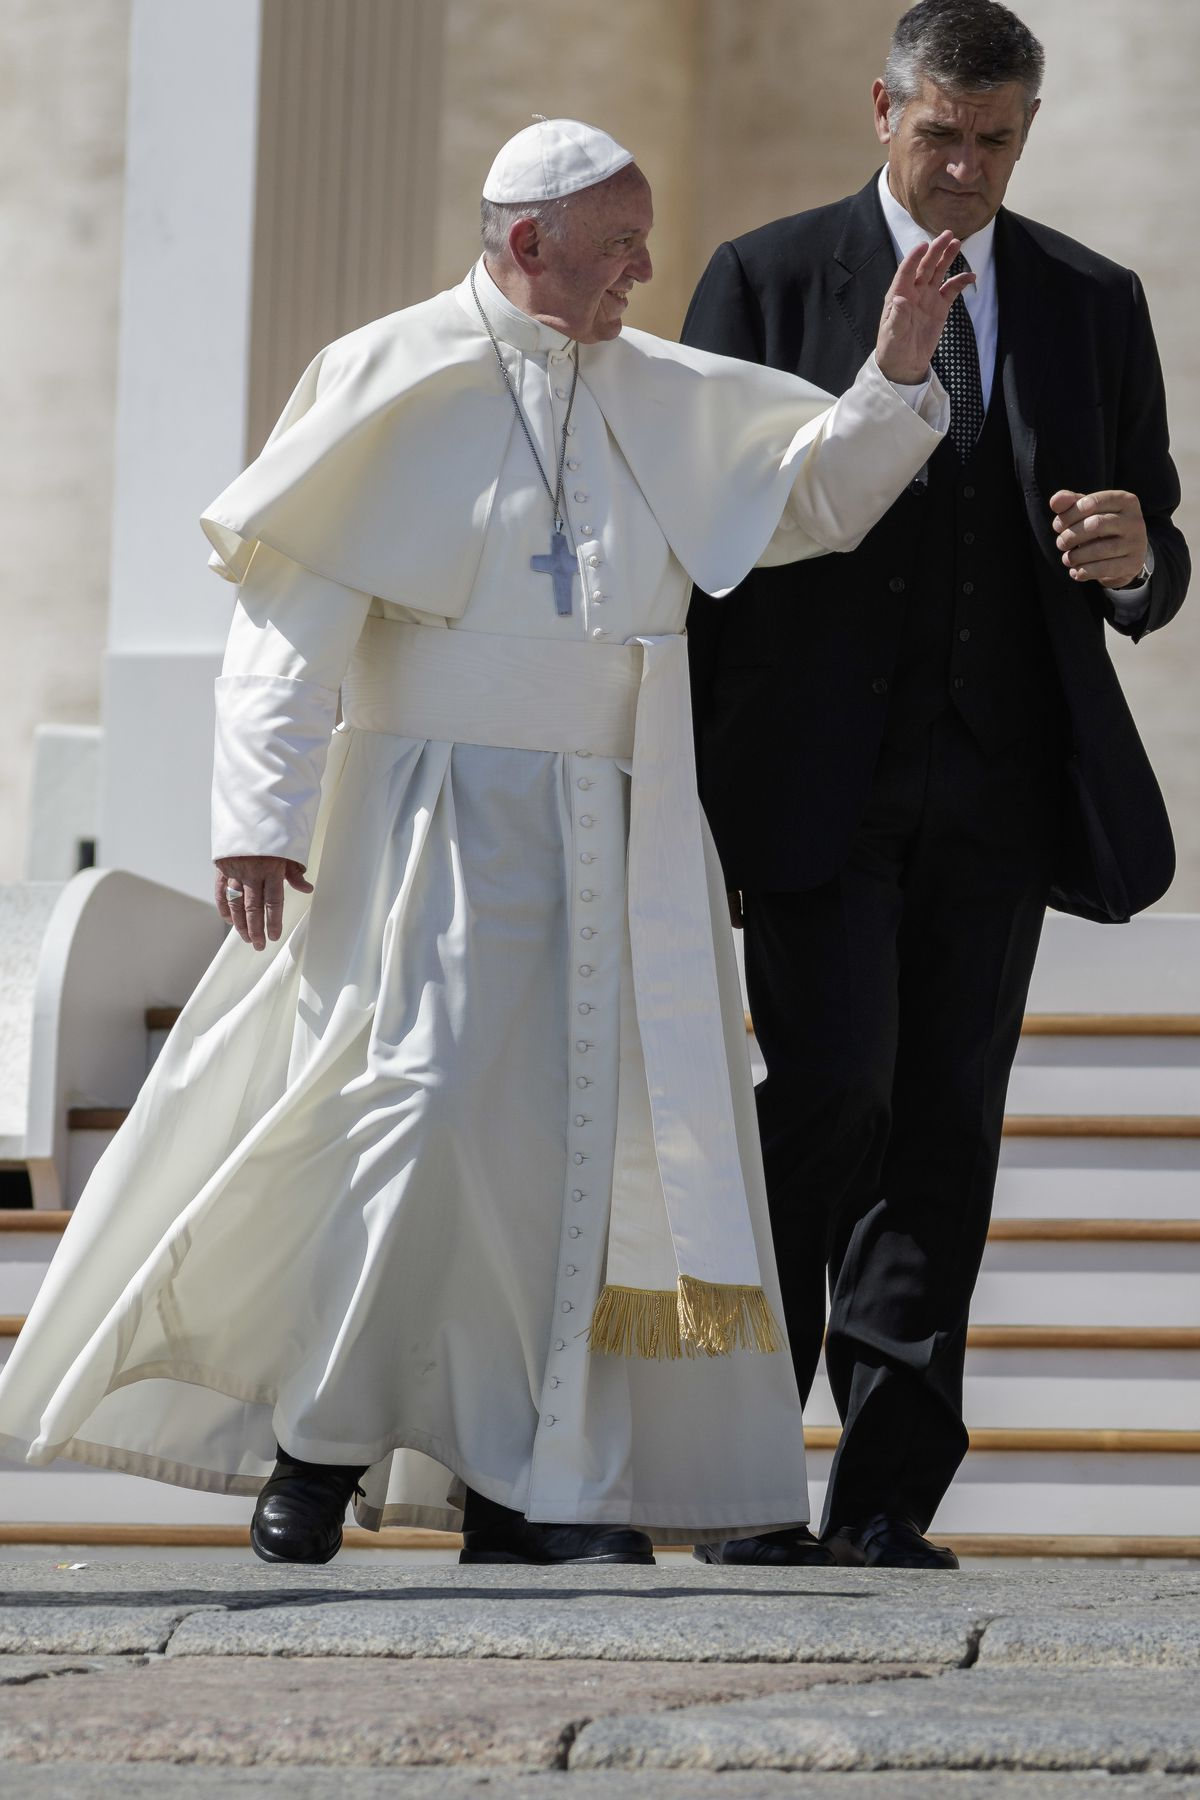 """Pope Francis's simple style led Esquire to name him 2013 """"Best Dressed Man of the Year."""""""